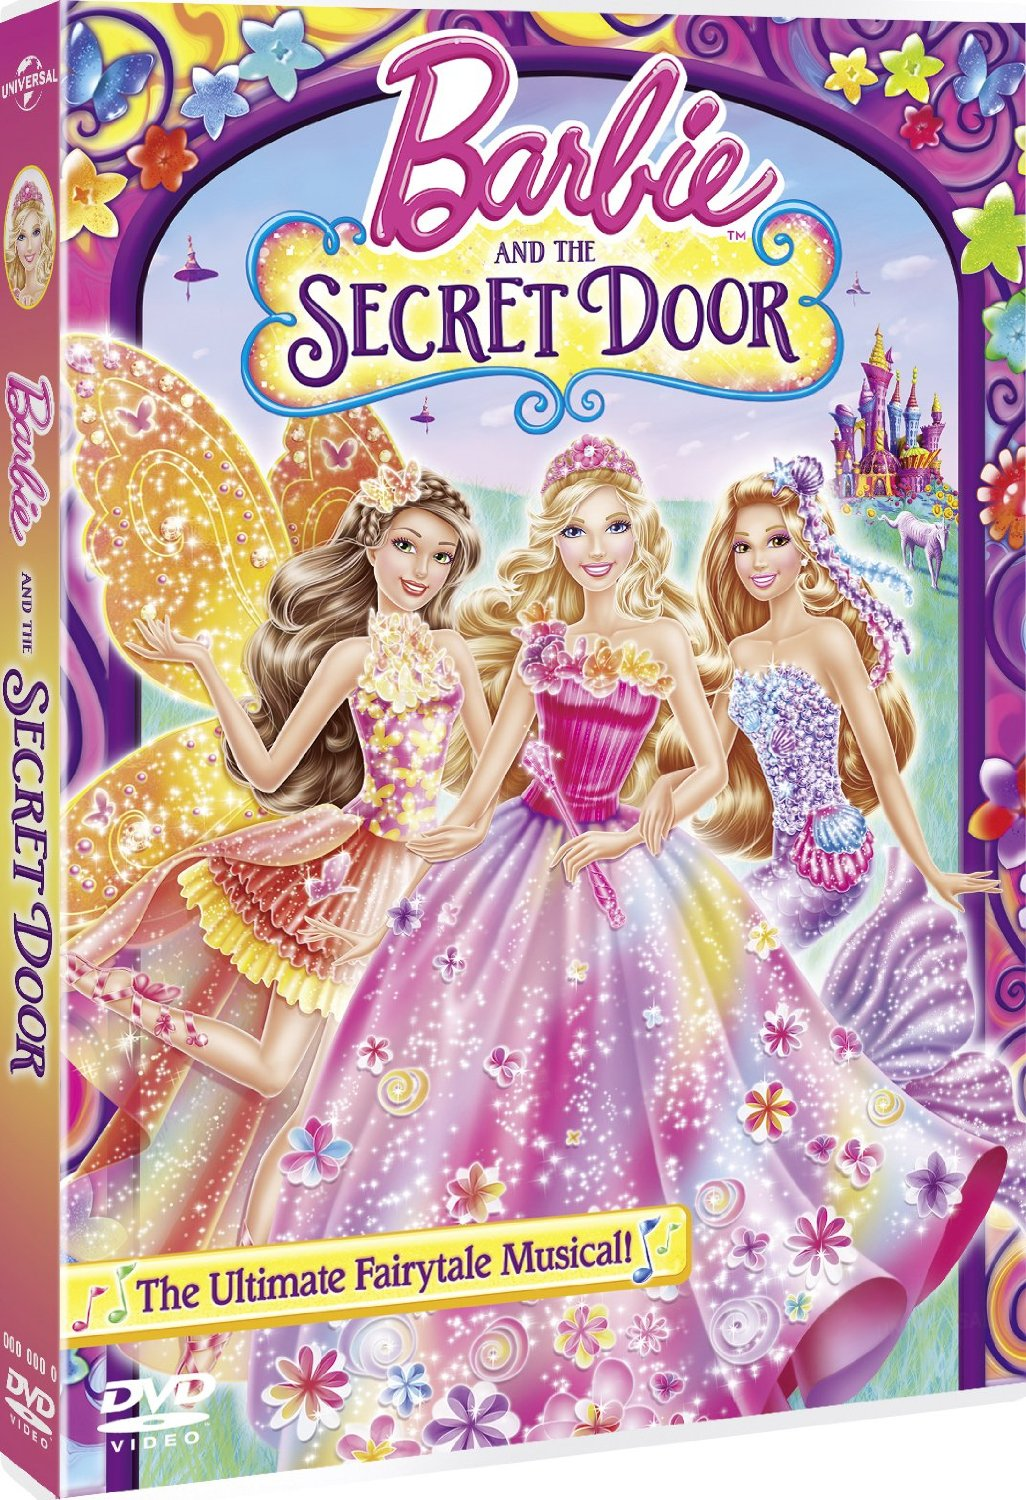 Barbie Movies Images And The Secret Door Dvd HD Wallpaper Background Photos